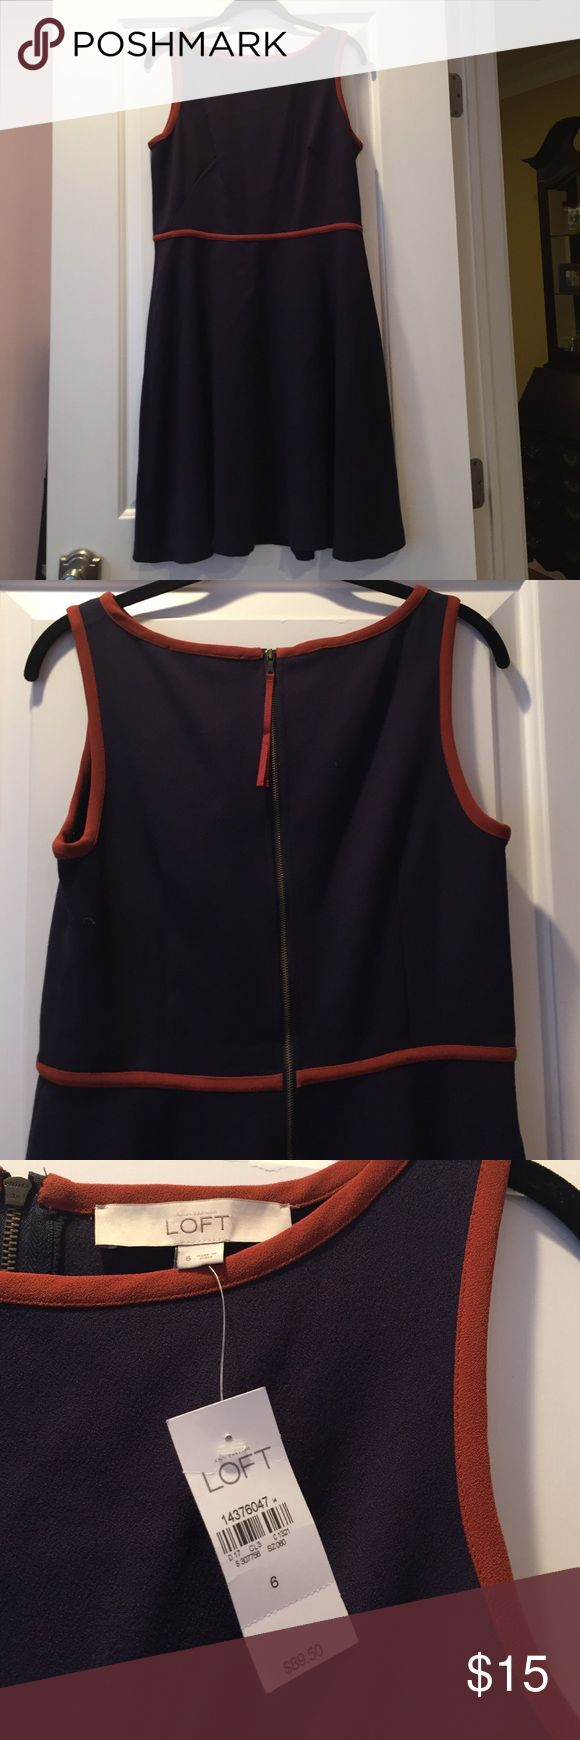 Classic LOFT DRESS NWT Timeless dress a Christmas present that didn't fit me LOFT Dresses